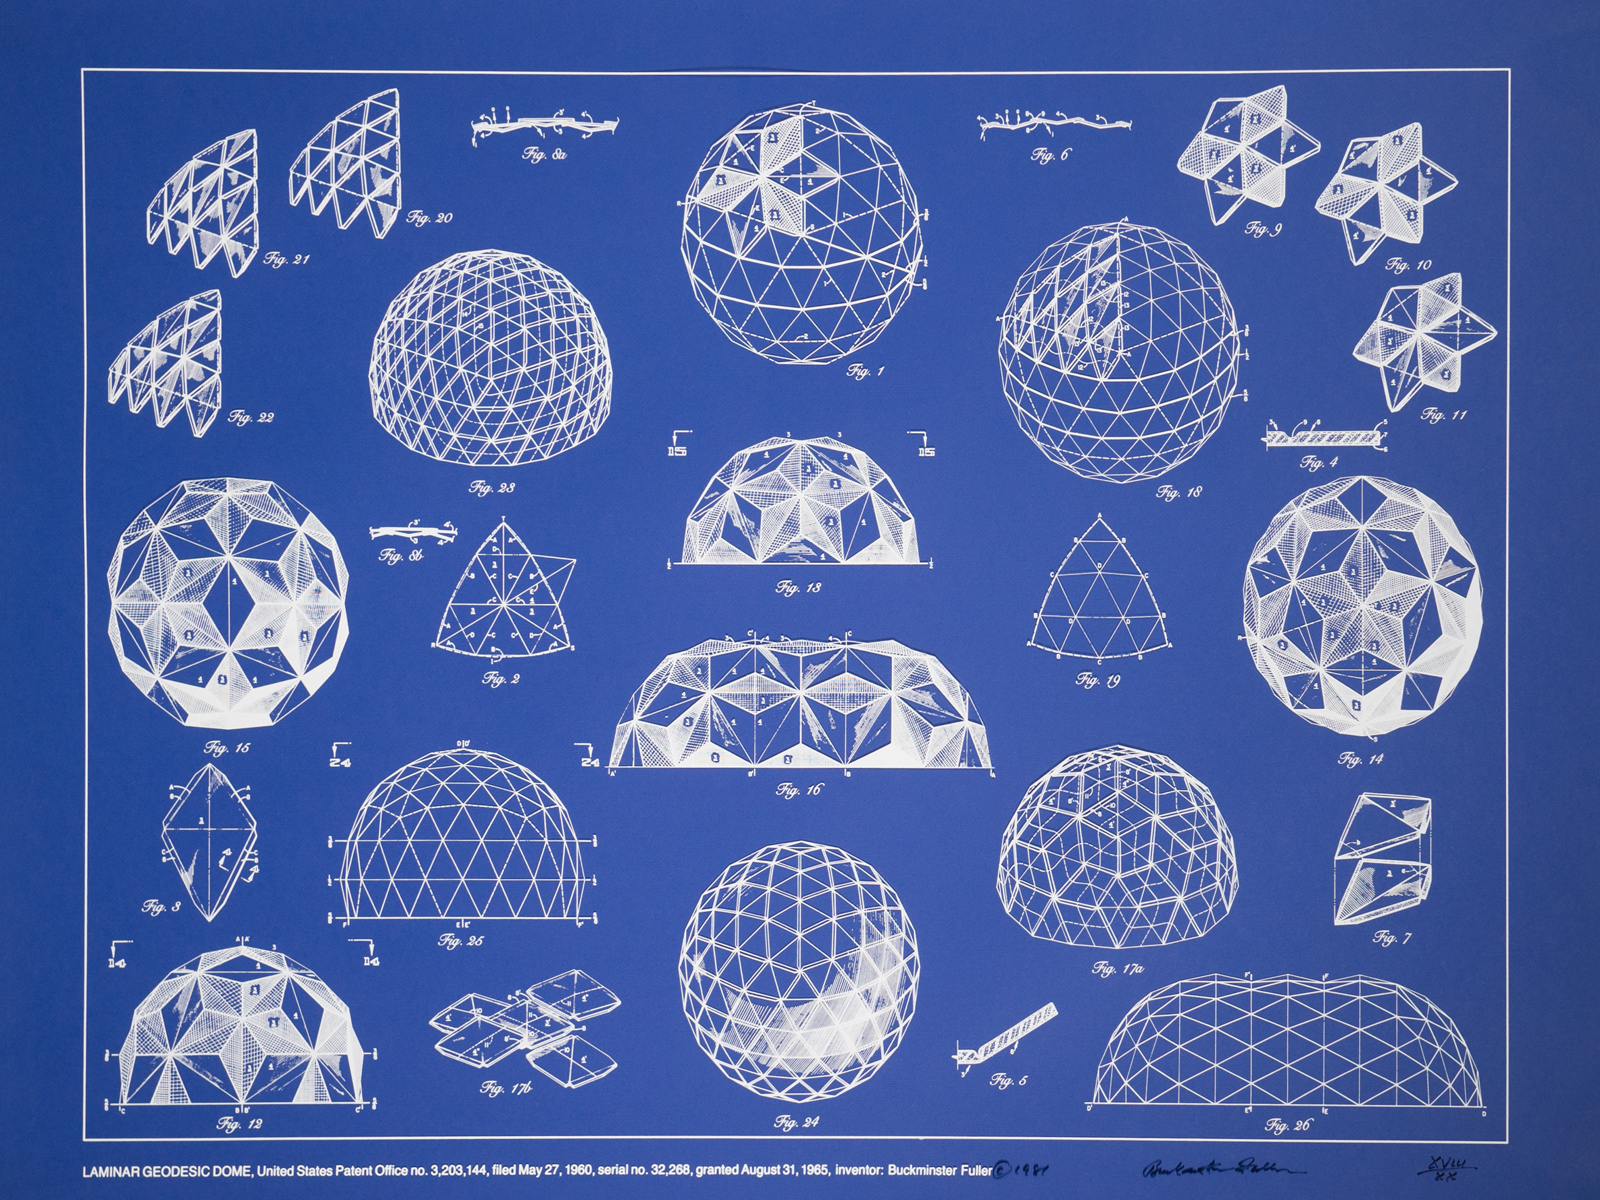 Bucky's Geodesic drawings art print